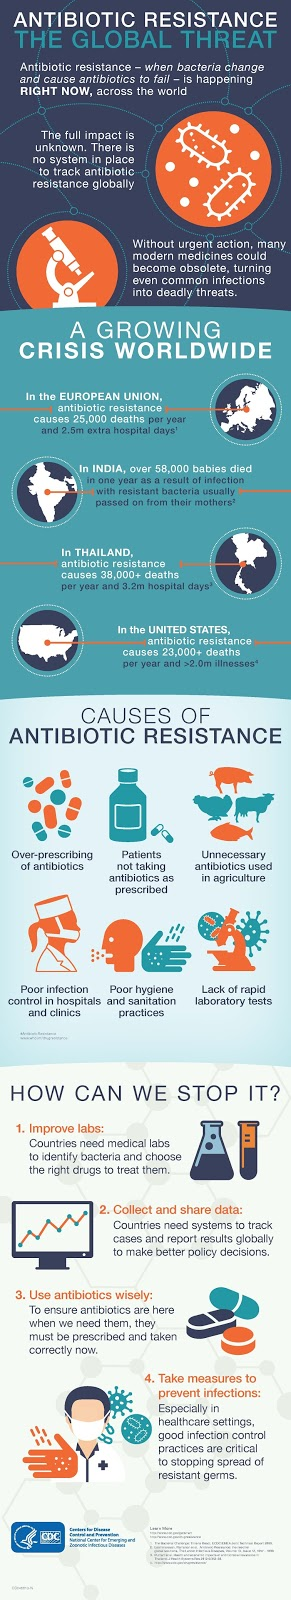 Antibiotic Resistance The Global Threat, CDC